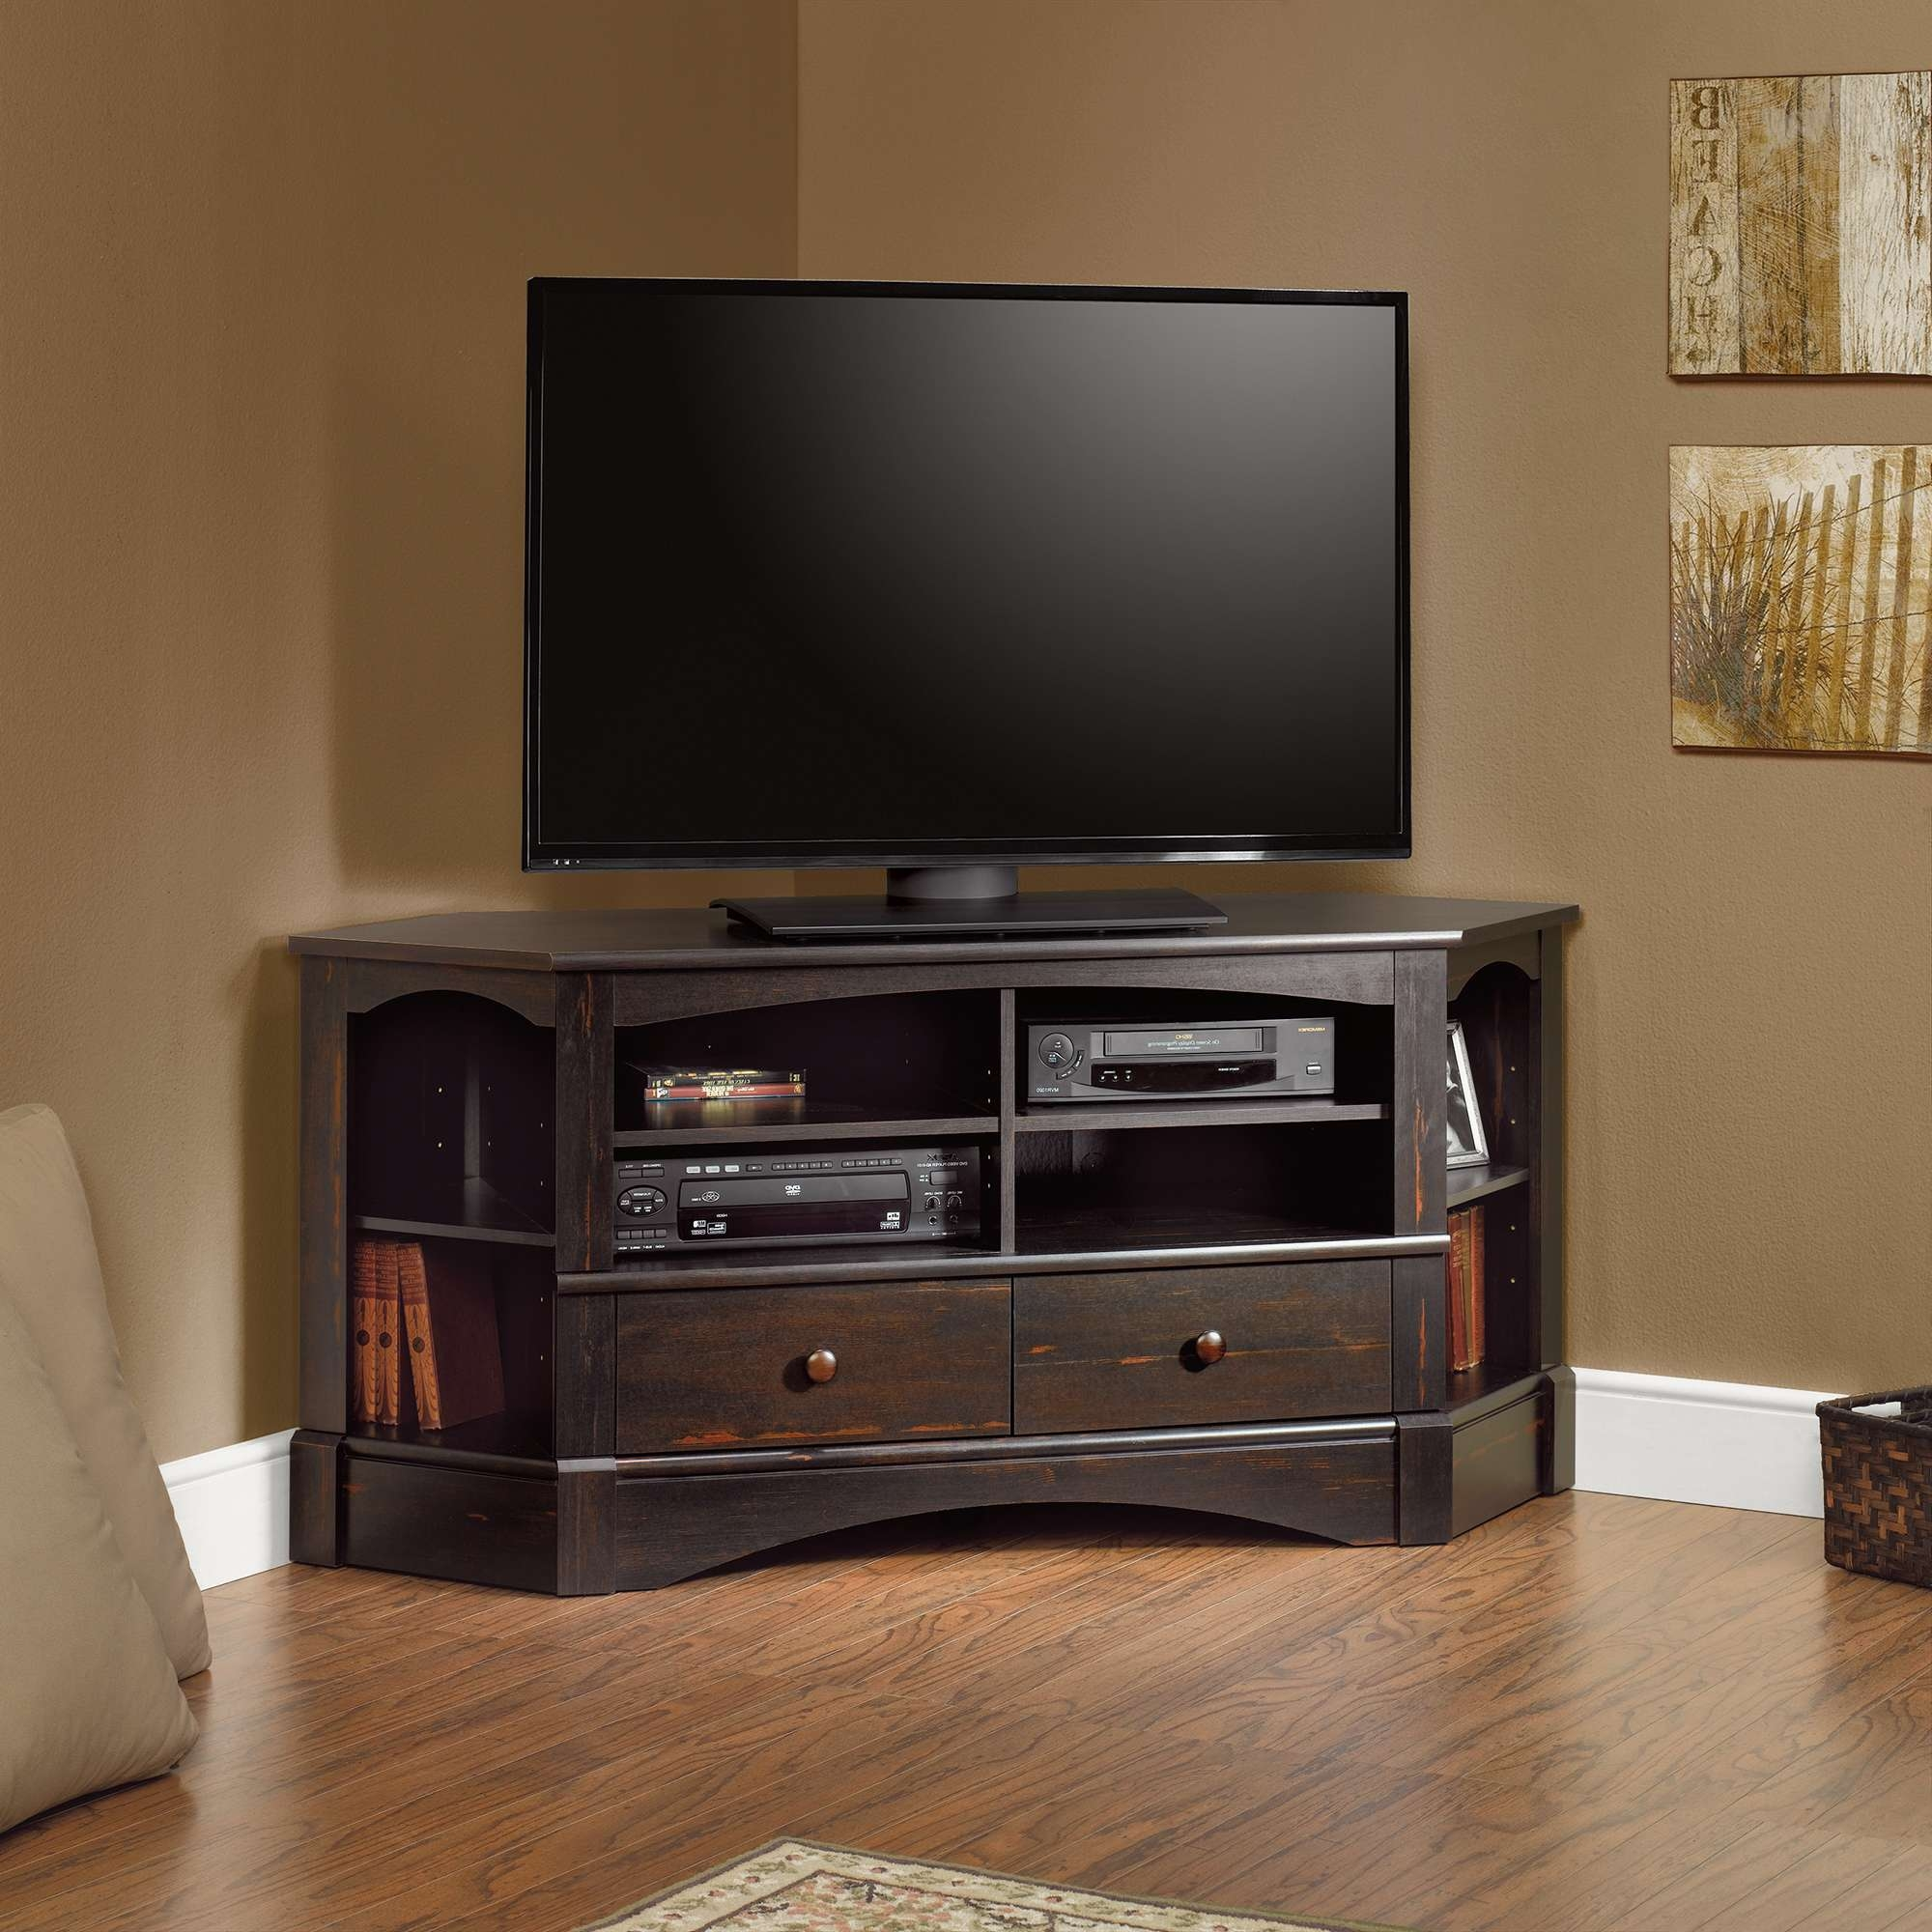 Amazing Corner Tv Stands For Flat Screen Tvs 76 In Small Home For Cheap Corner Tv Stands For Flat Screen (View 2 of 20)